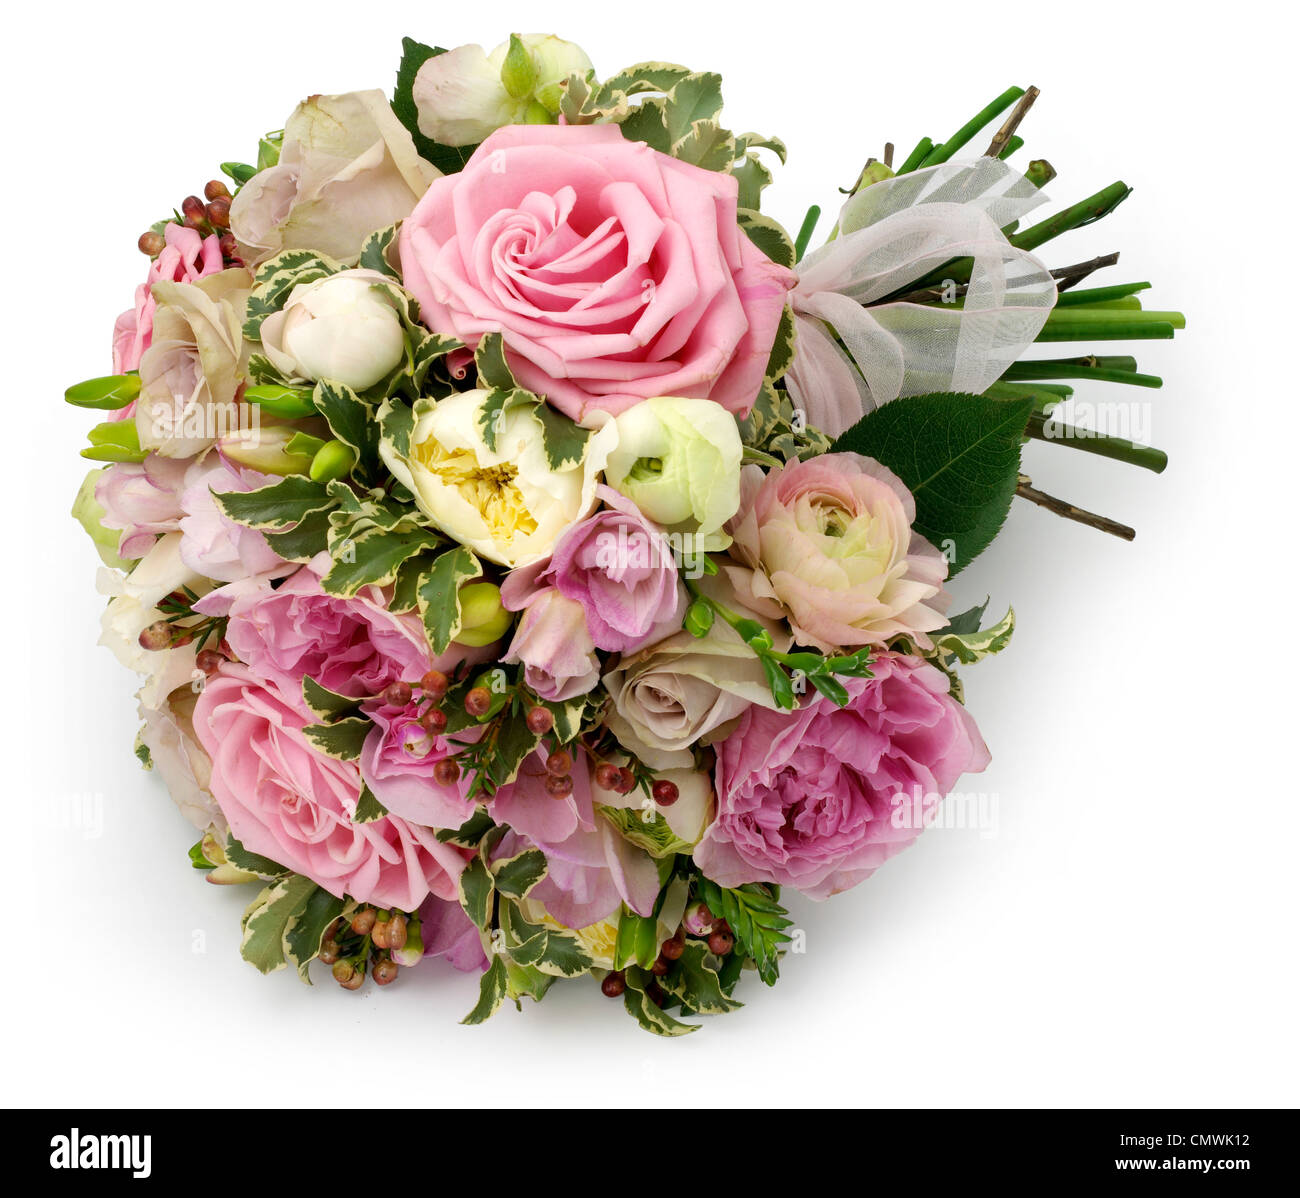 one large bouquet - Stock Image